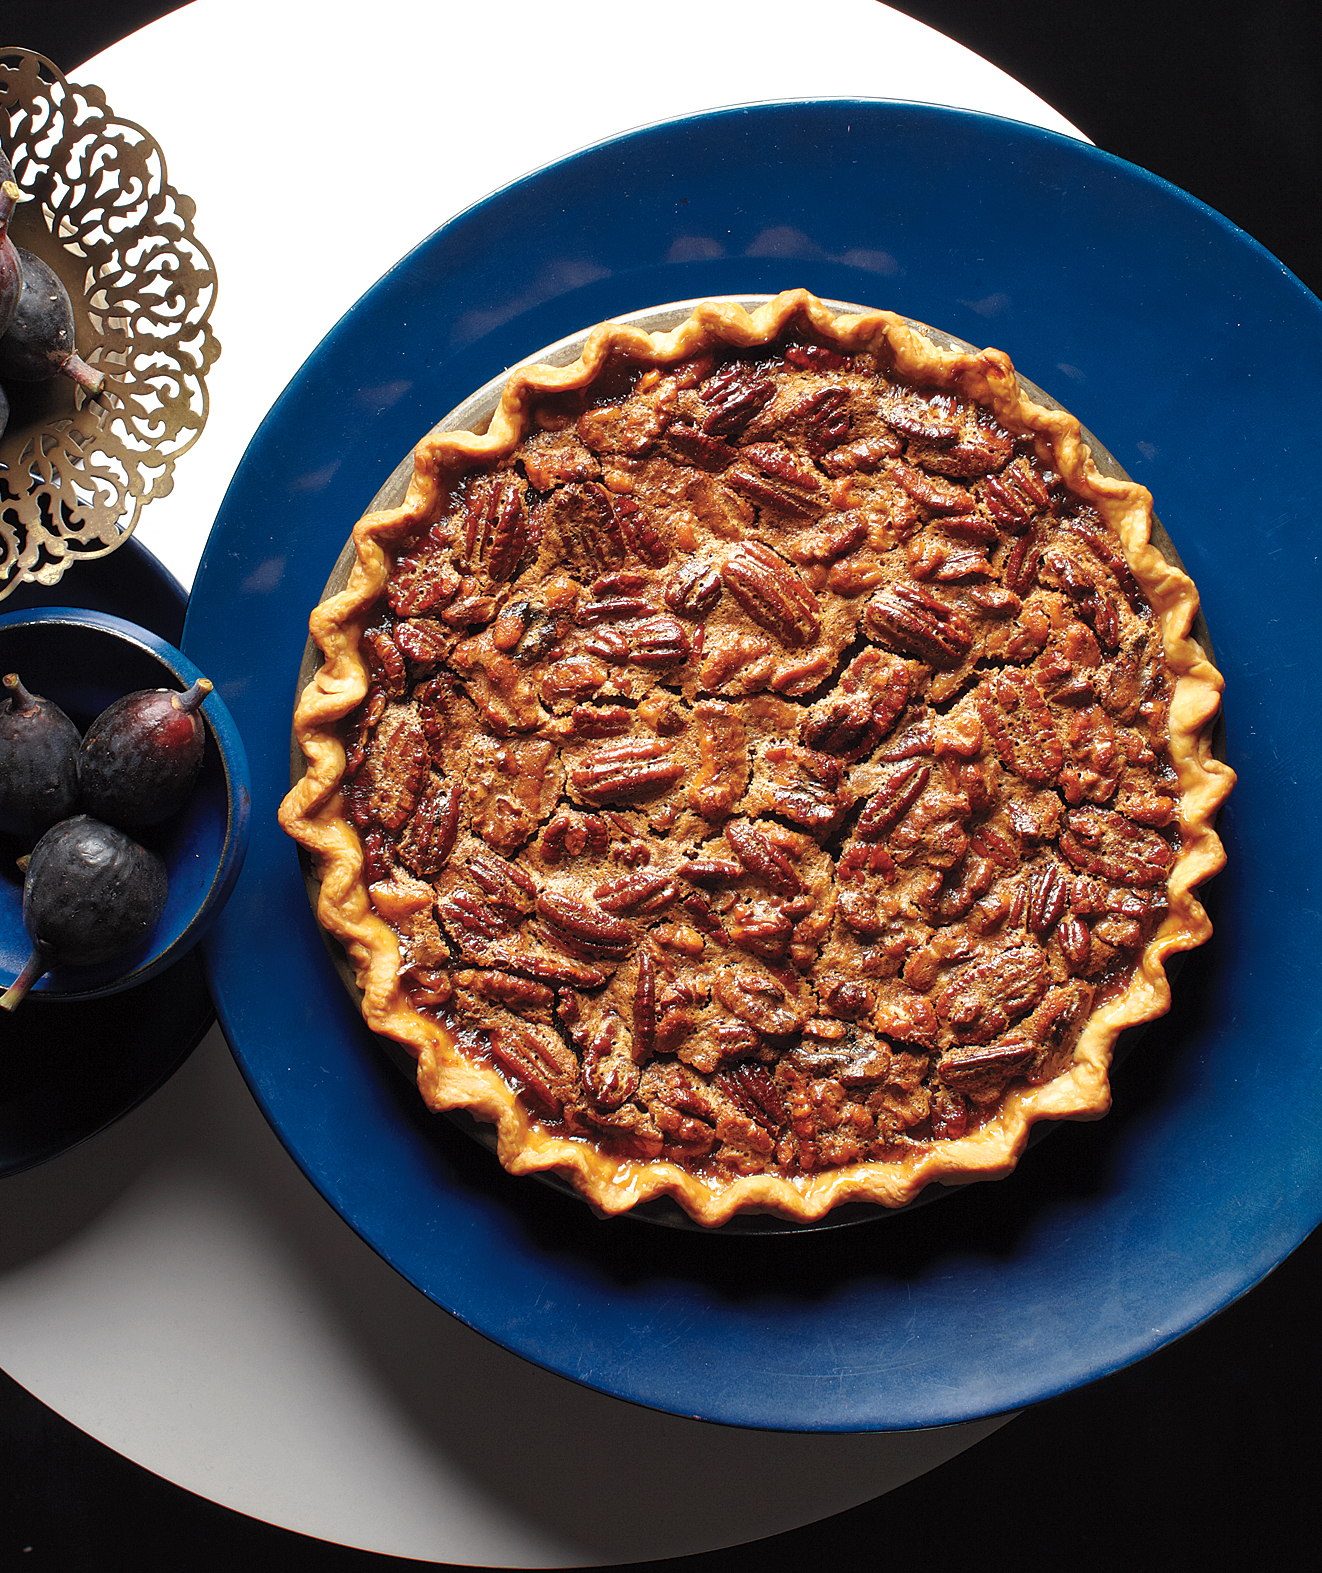 Pecan and Walnut Pie